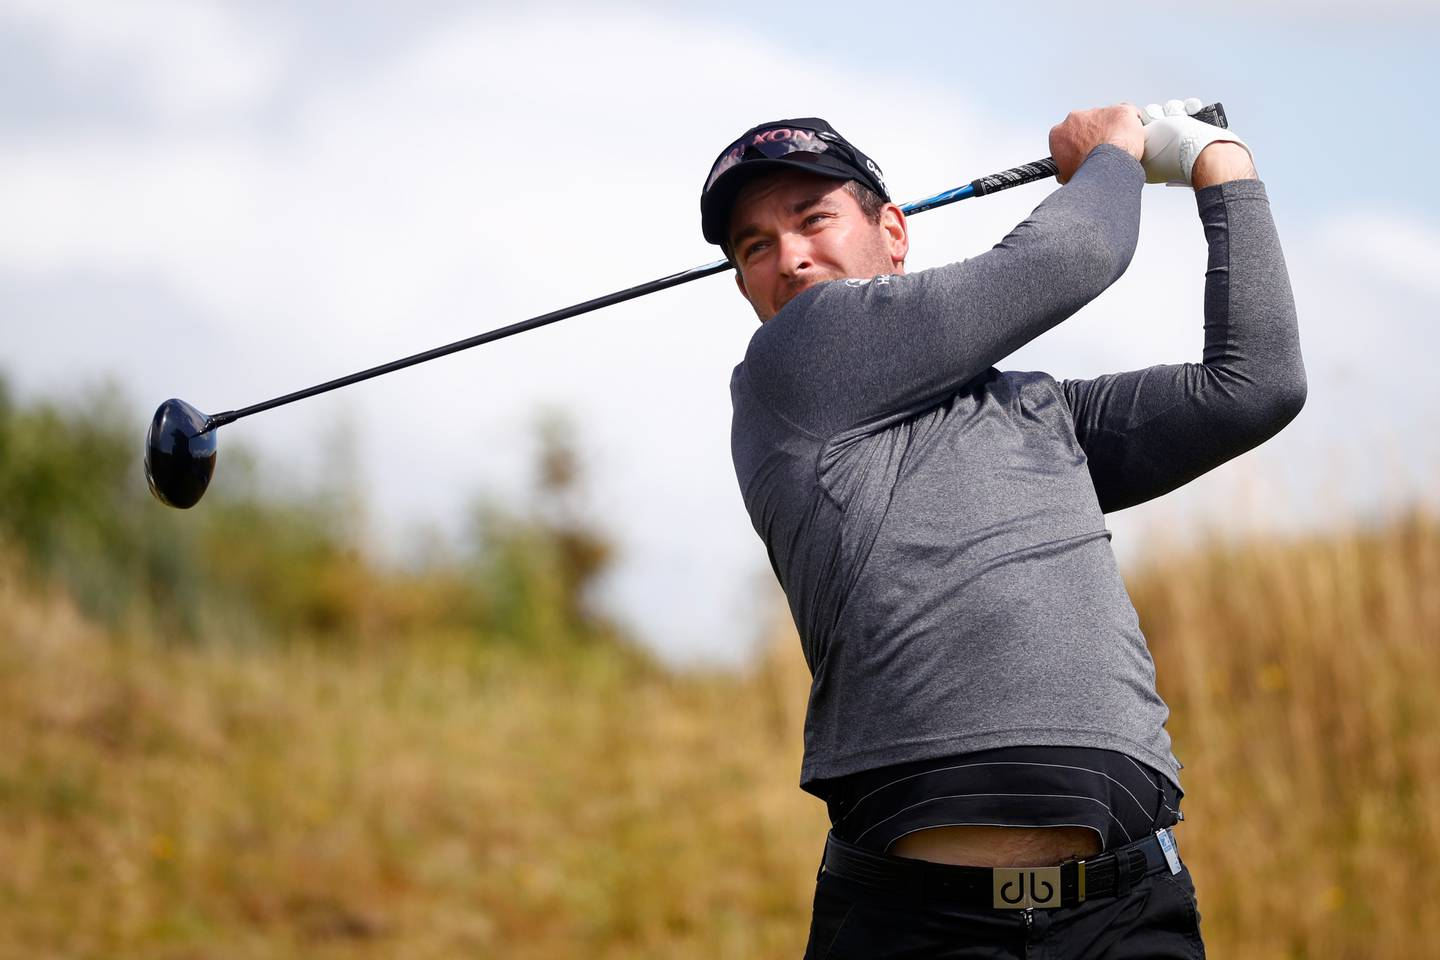 TROON, SCOTLAND - JULY 16:  Ryan Fox of New Zealand tees off on the 2nd hole during the final round of the AAM Scottish Open at Dundonald Links Golf Course on July 16, 2017 in Troon, Scotland.  (Photo by Gregory Shamus/Getty Images)